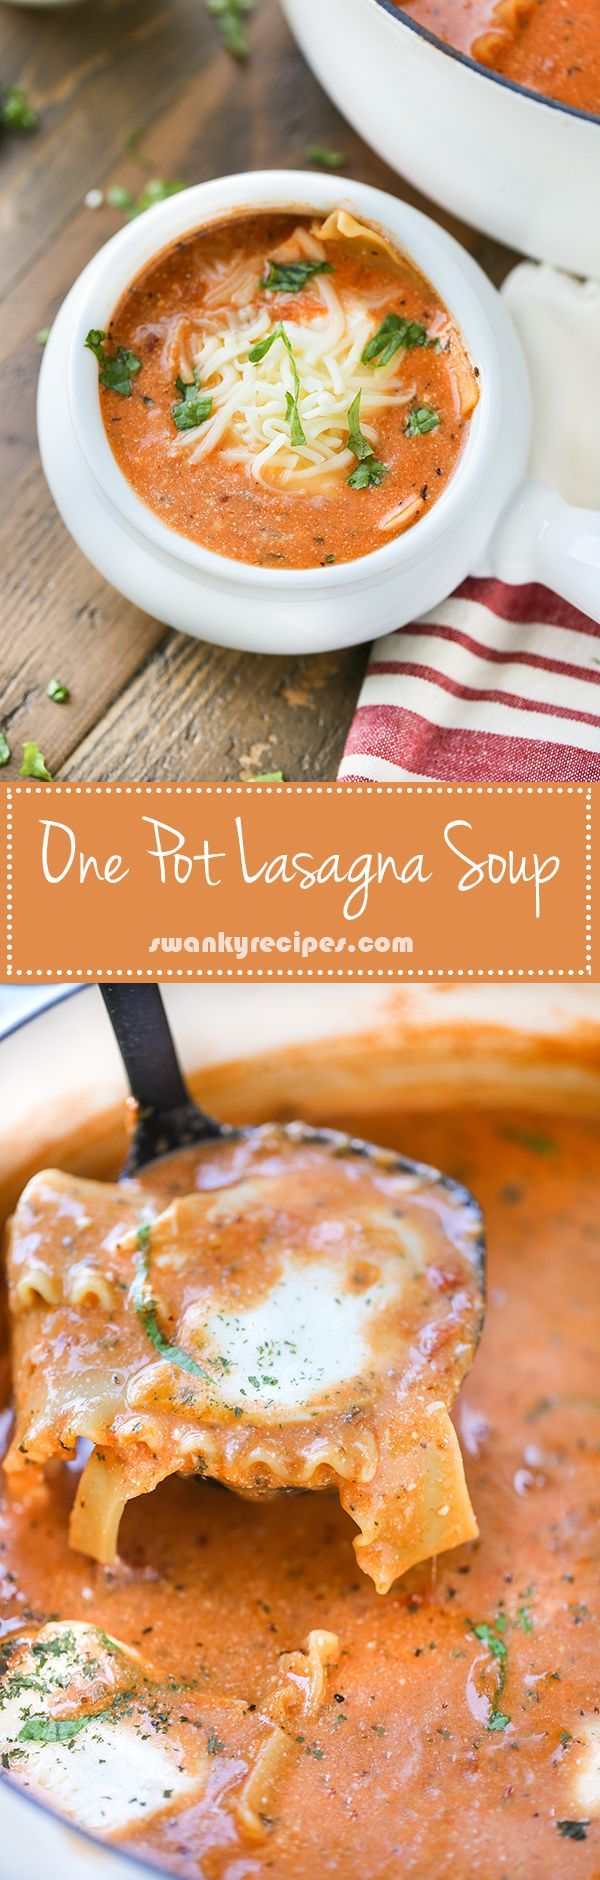 One Pot Lasagna Soup - Easy vegetarian soup with spinach and cheese. This recipe is a must!